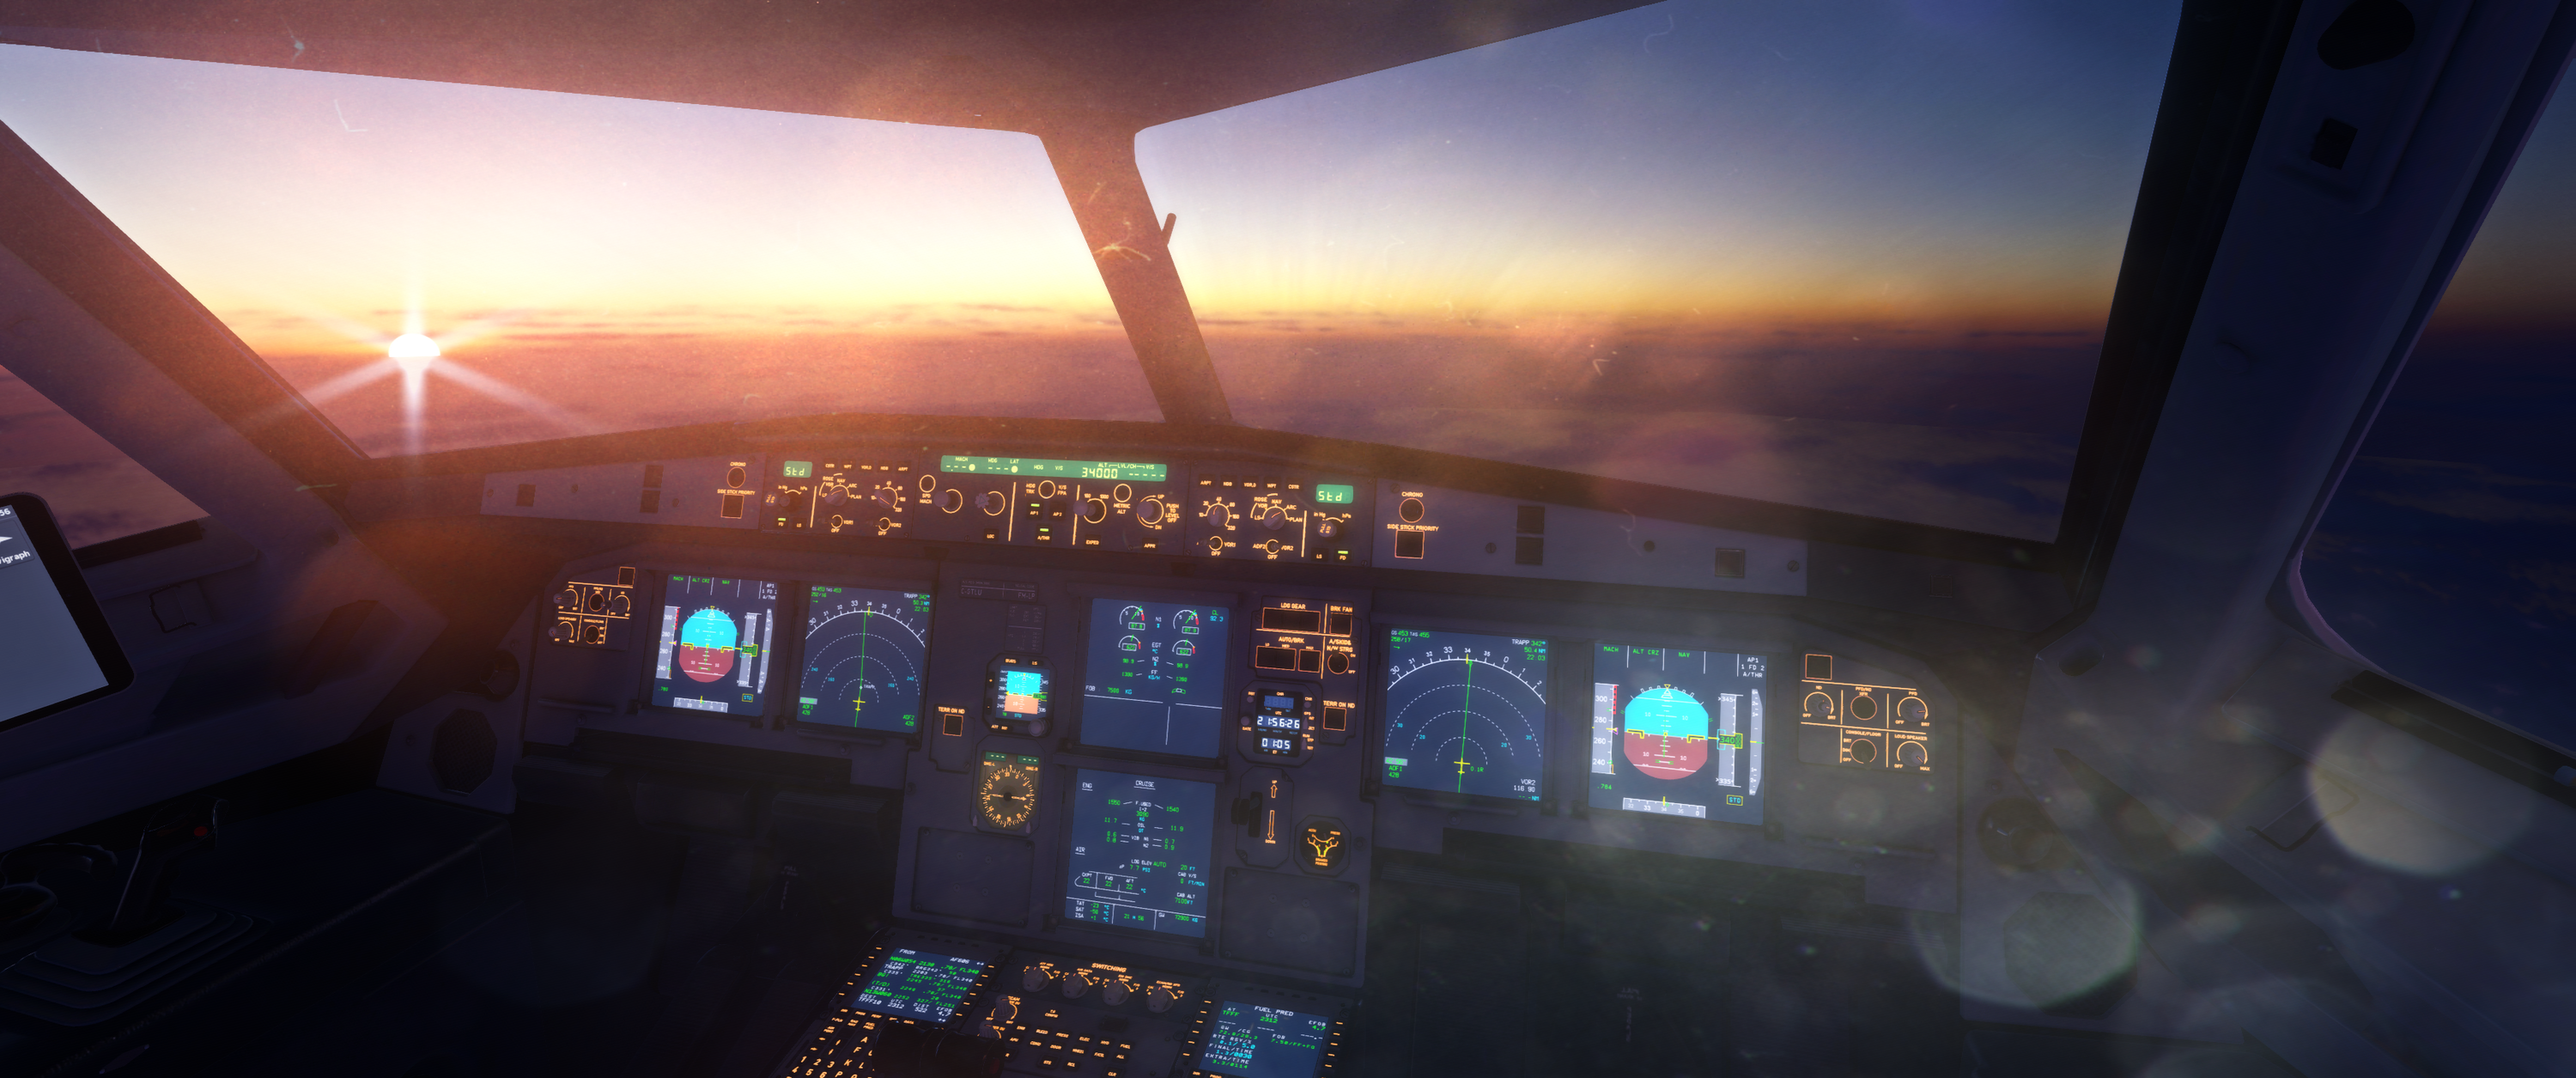 X-Plane Screenshot 2020.03.18 - 22.56.26.72.png